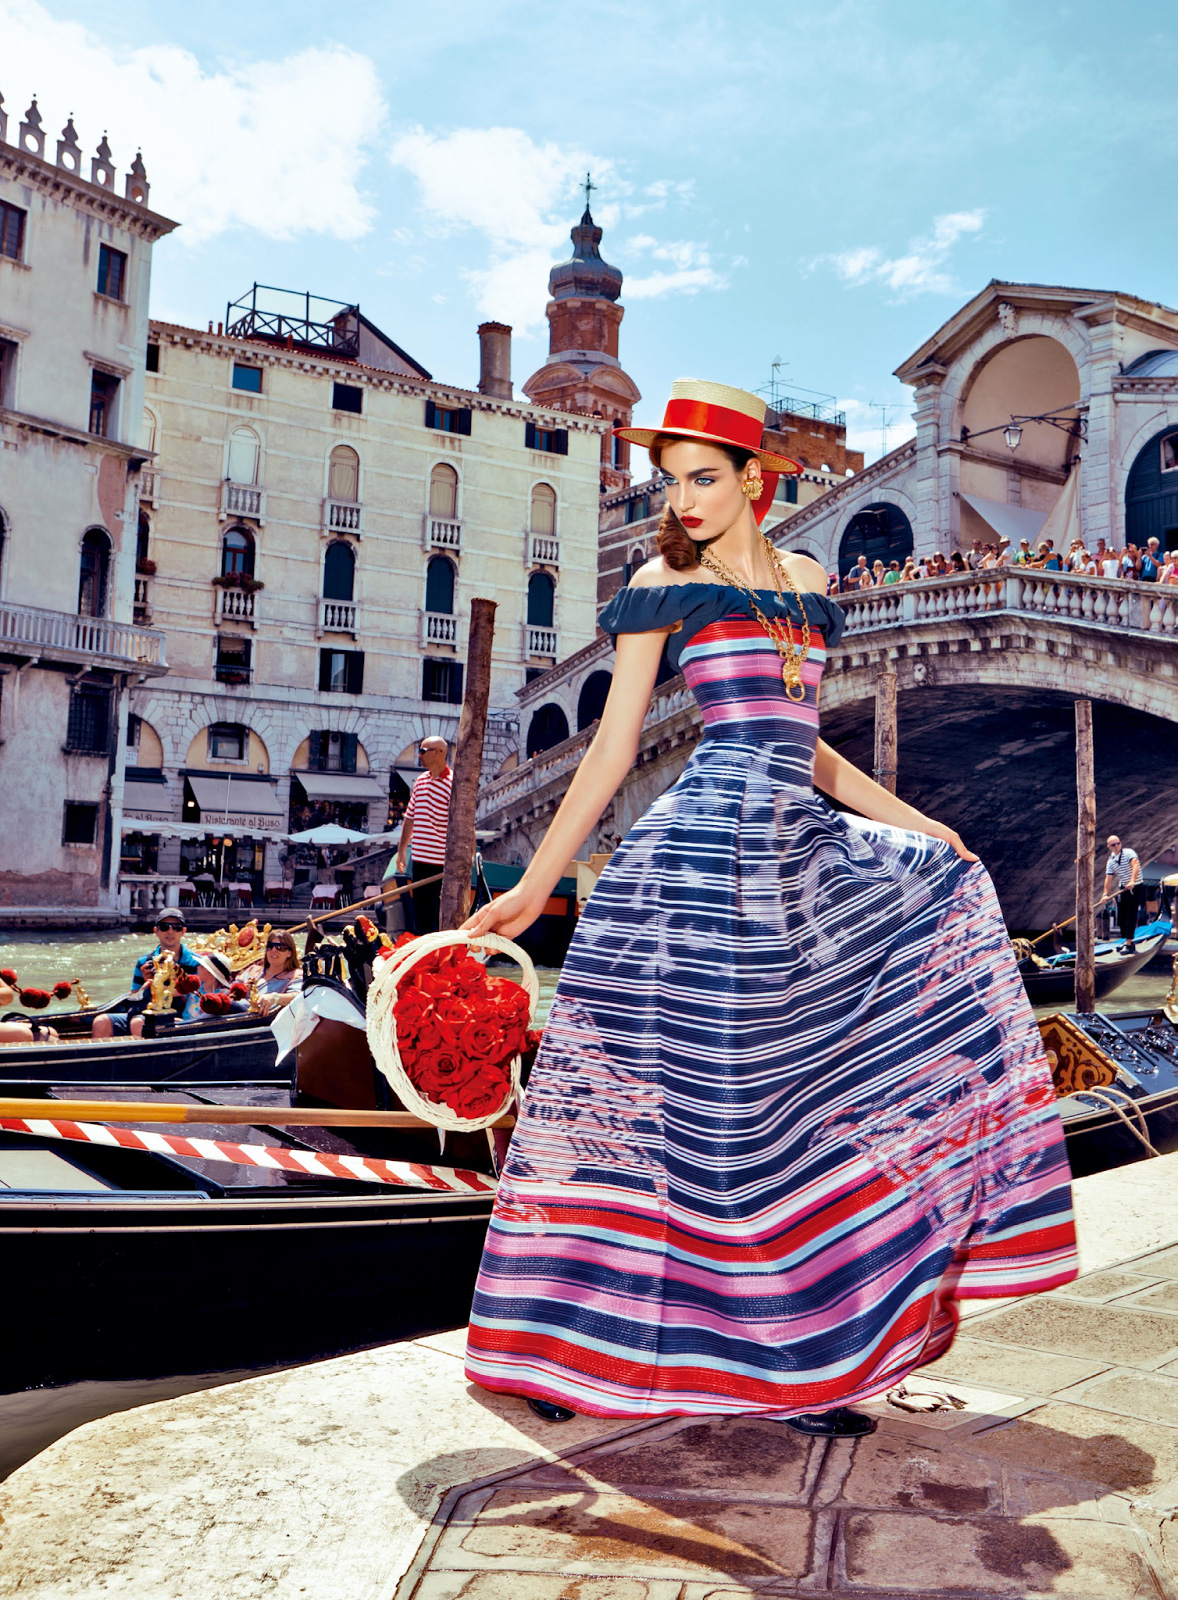 Giovanna-Battaglia-5-My-Fascination-with-Venice-Vogue-Japan-Pierpaolo-Ferrari.jpeg